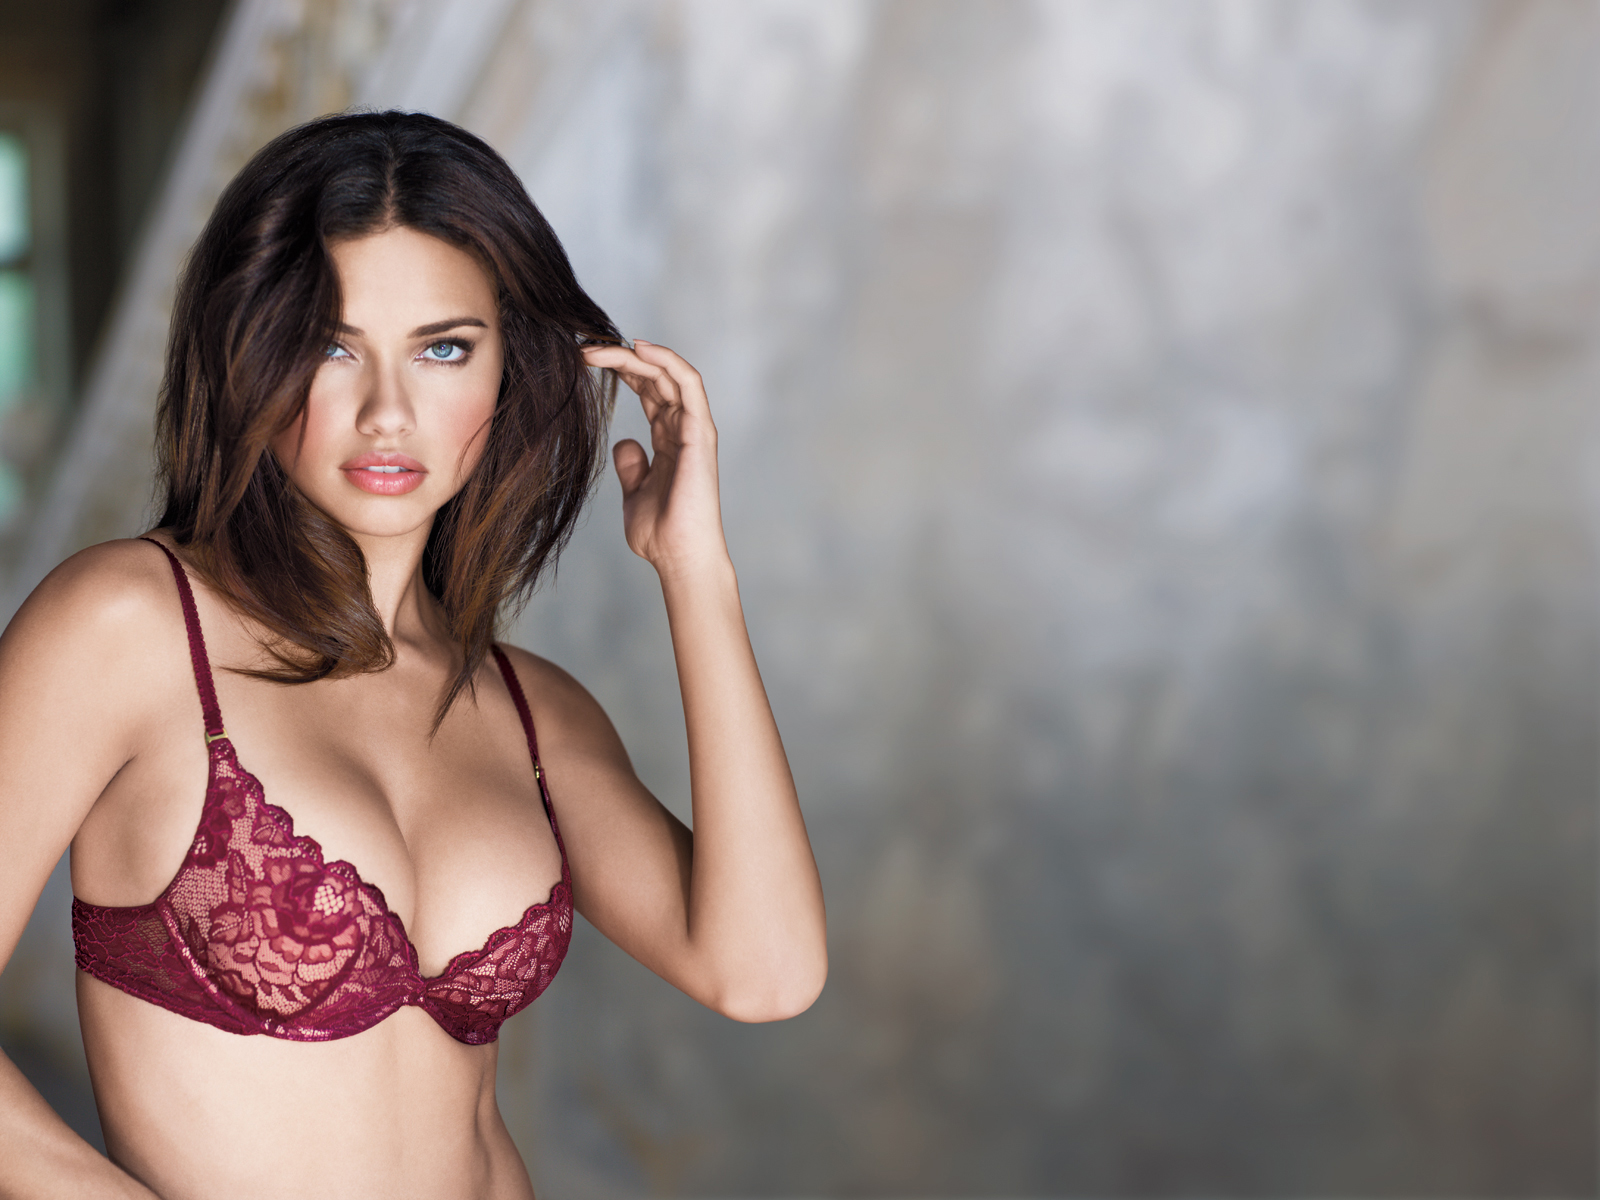 The nices wallpapers adriana lima hd wallpapers adriana lima hd wallpapers high resolution backgrounds for your desktop voltagebd Image collections